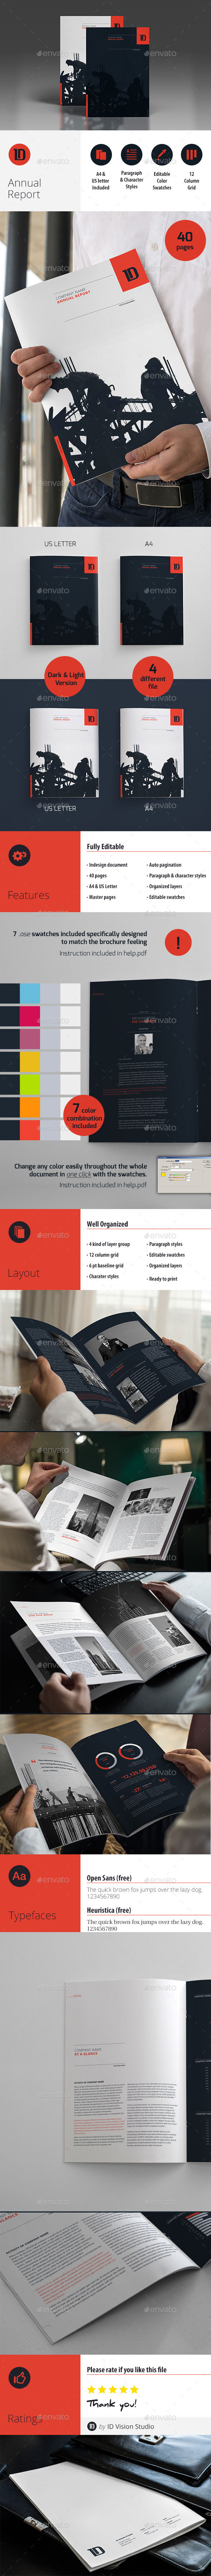 GraphicRiver Annual Report Template 10436271